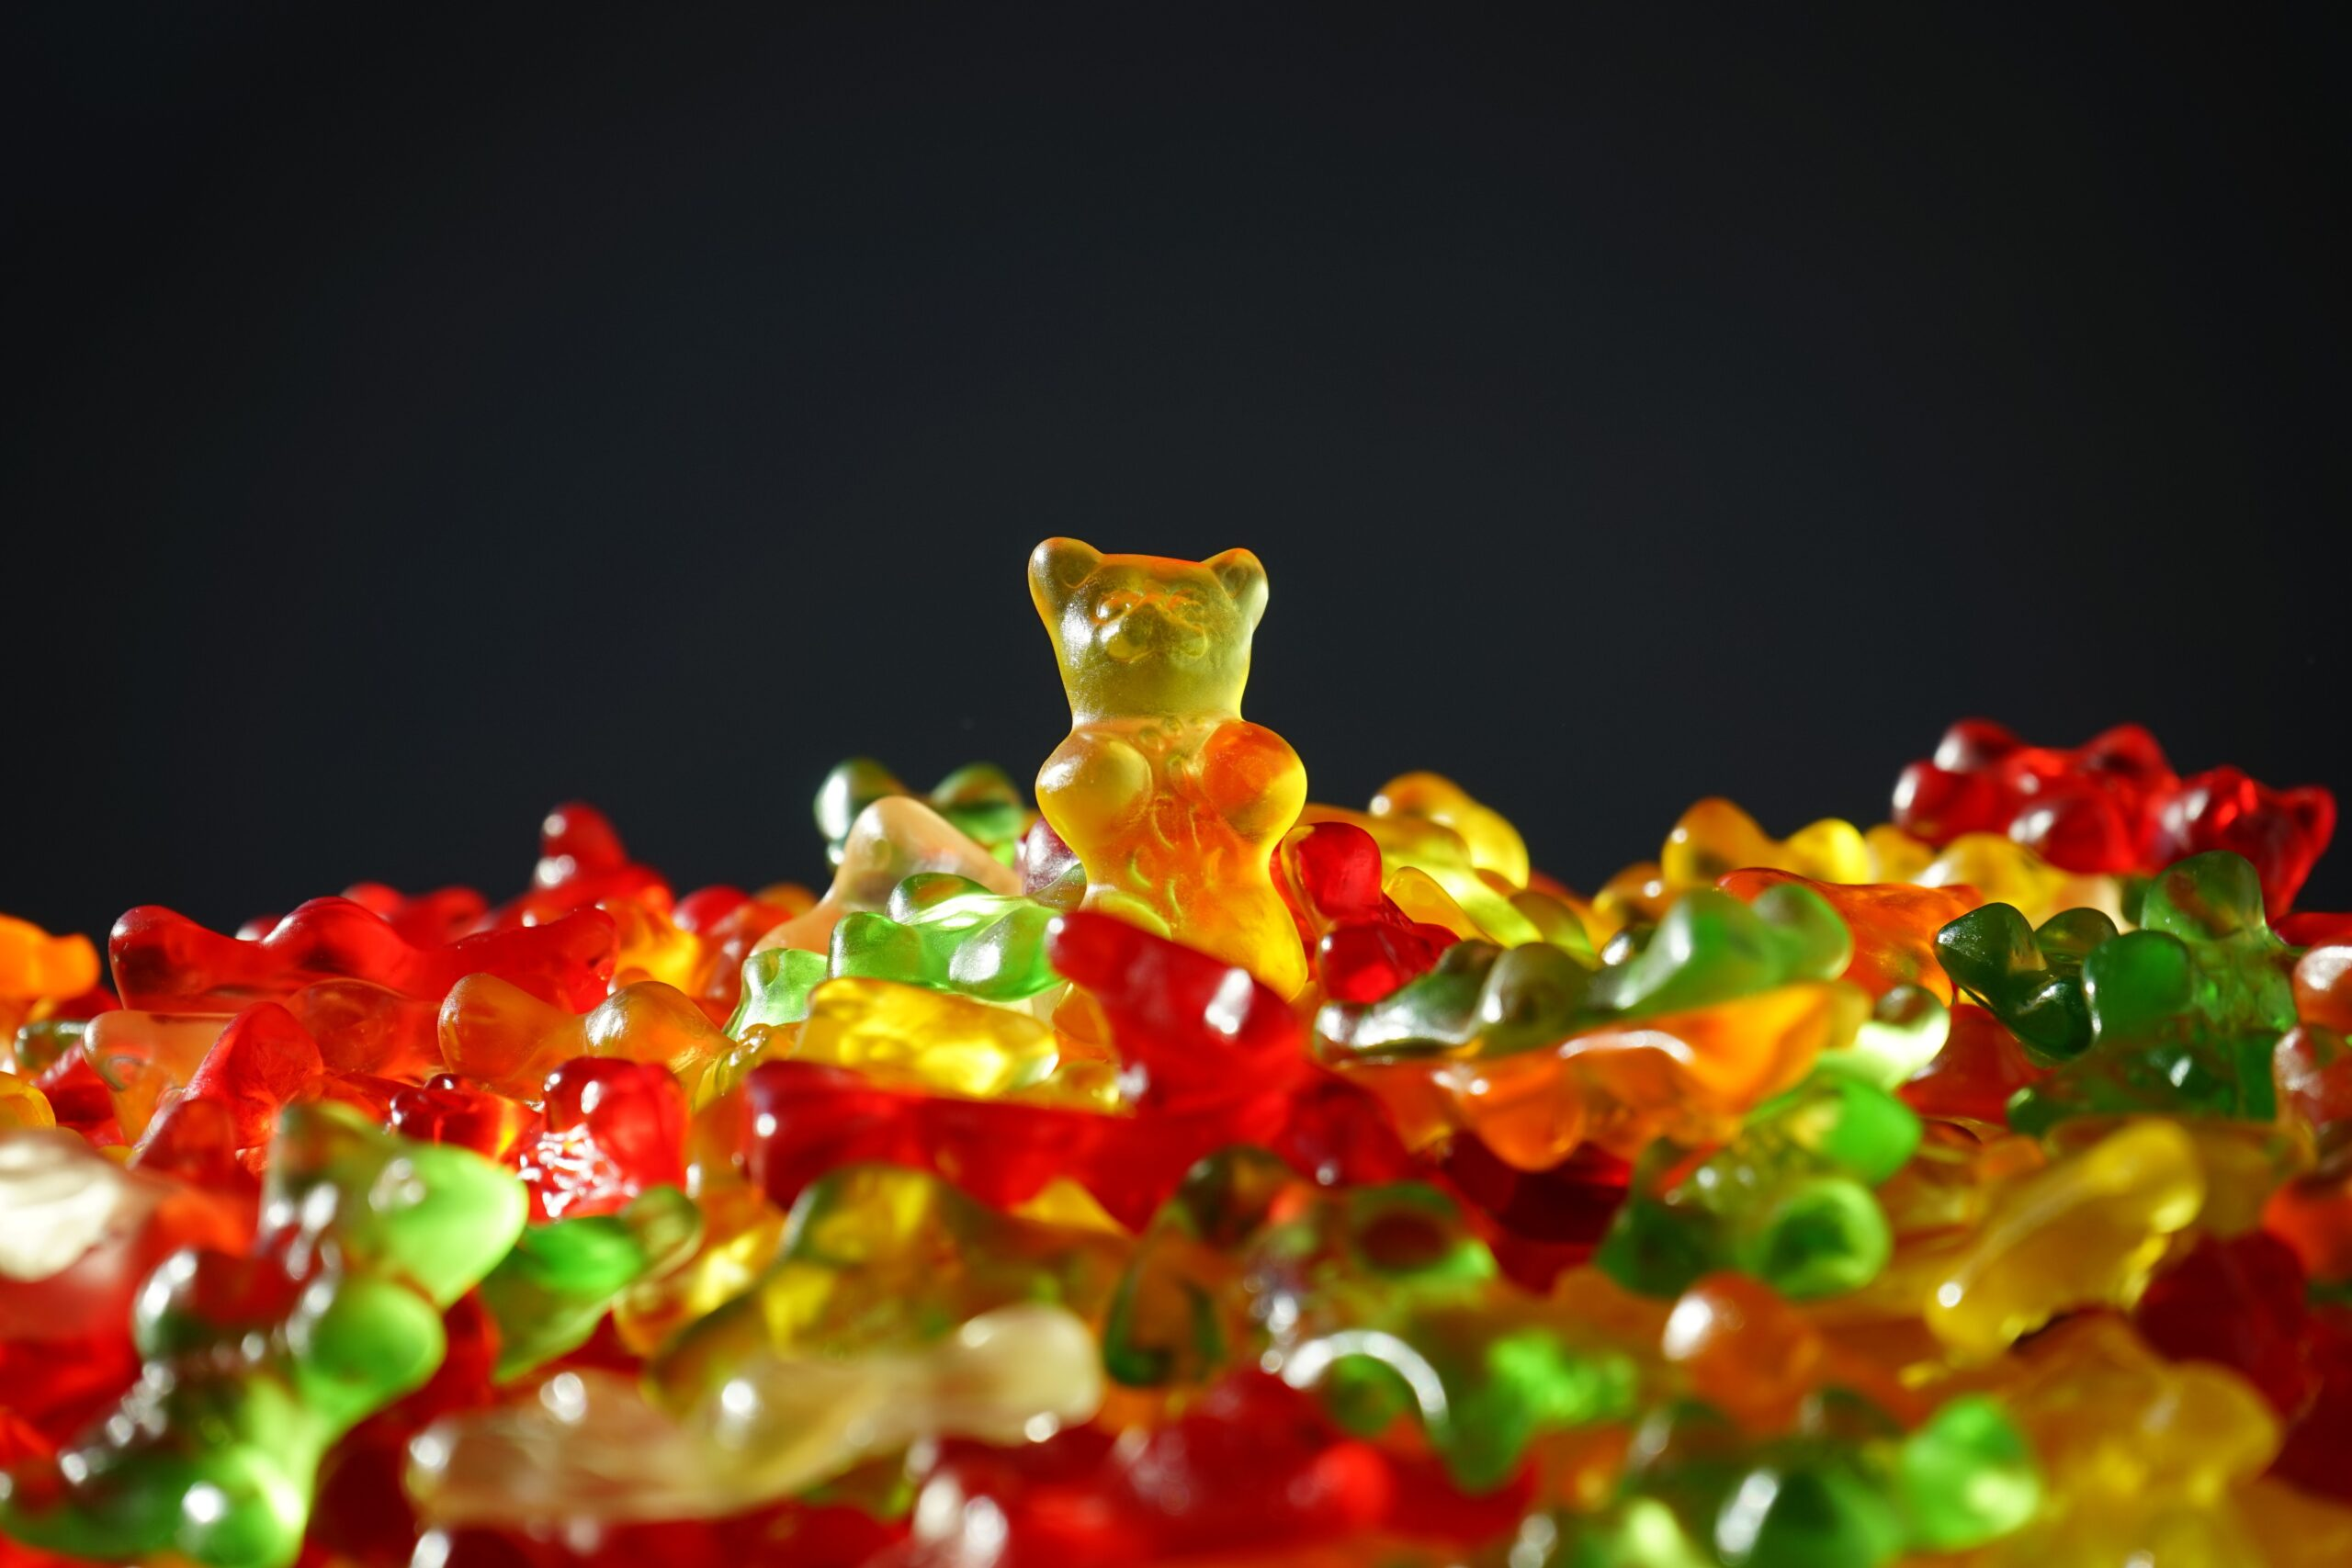 Is it time to reformulate your edibles?